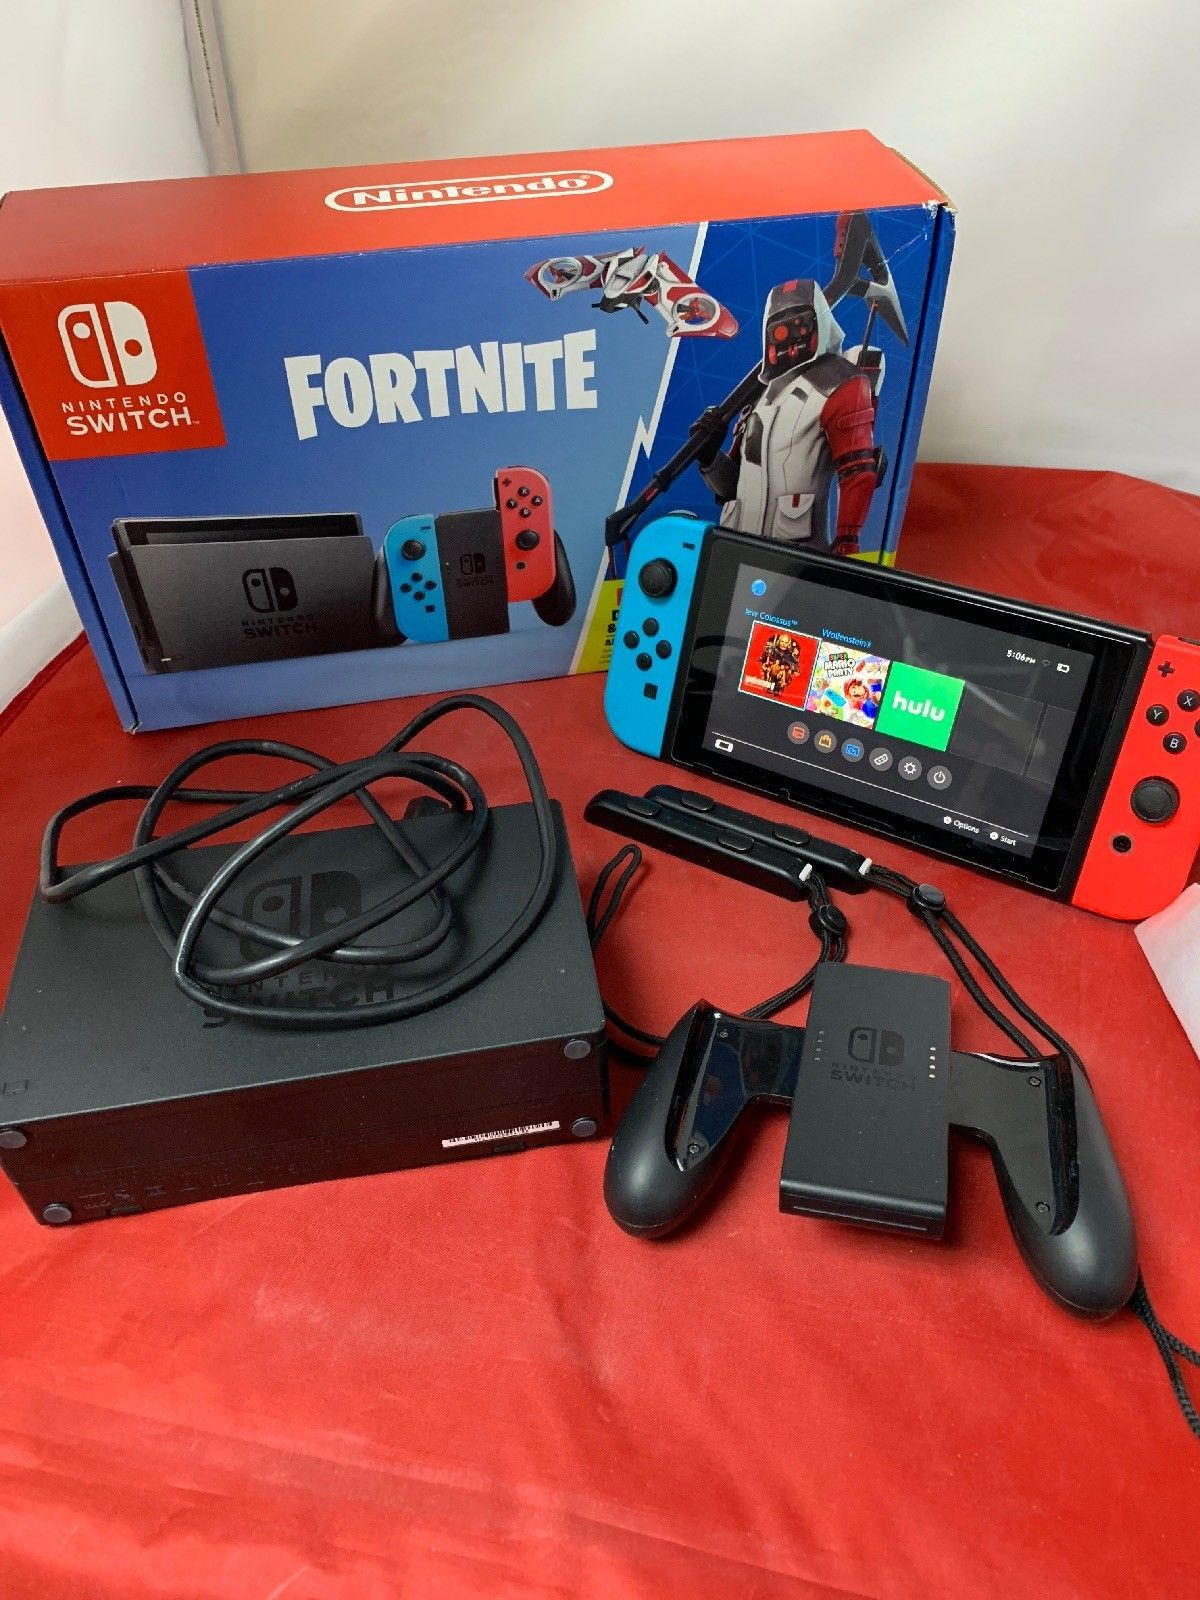 Nintendo Switch Fortnite Double Helix Console Bundle Account Linked Fortnite Nintendo Nintendo Switch